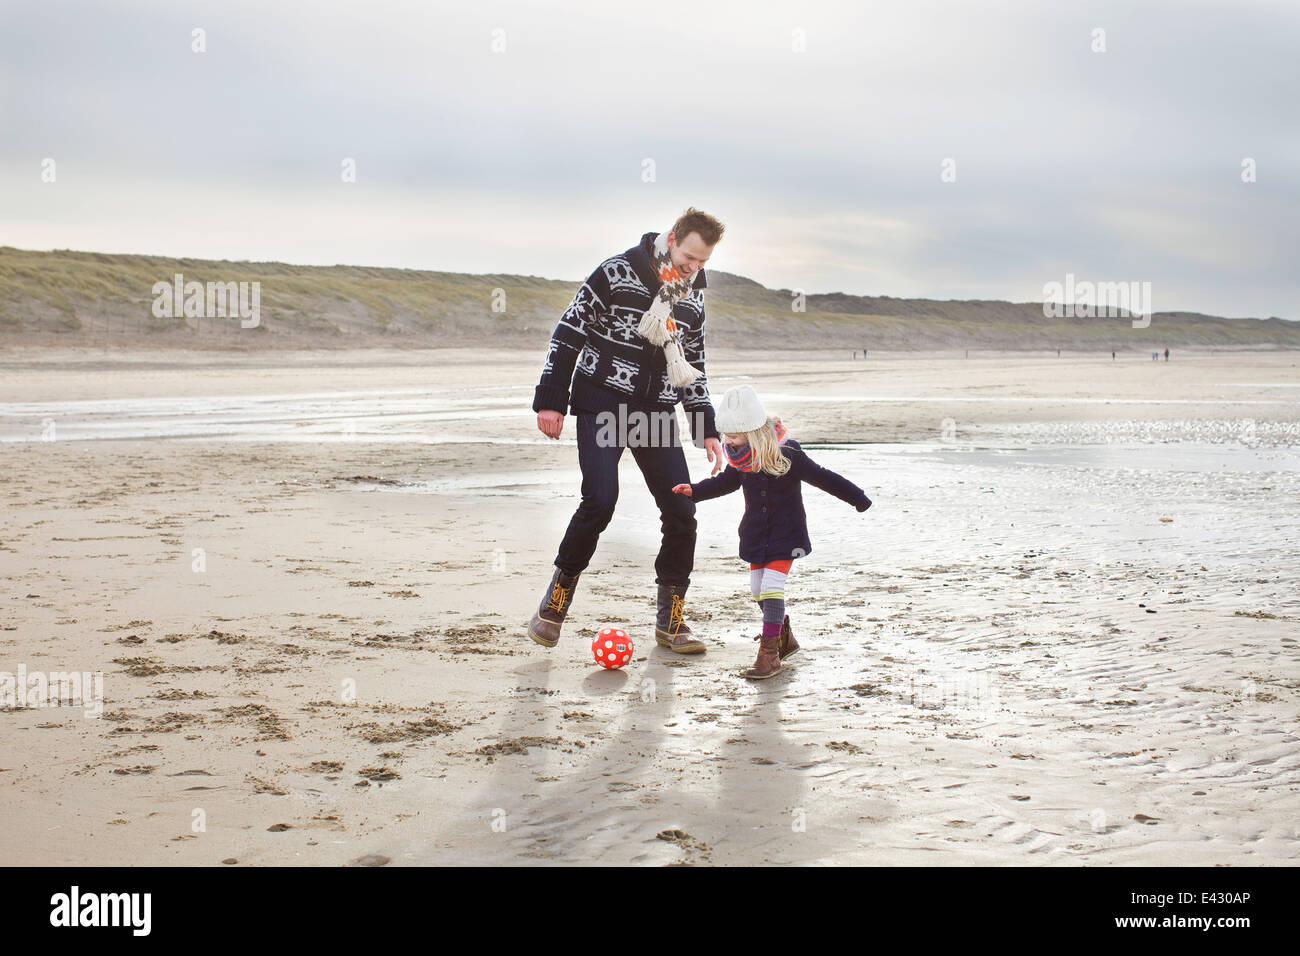 Mid adult man with daughter playing football on beach, Bloemendaal aan Zee, Netherlands - Stock Image